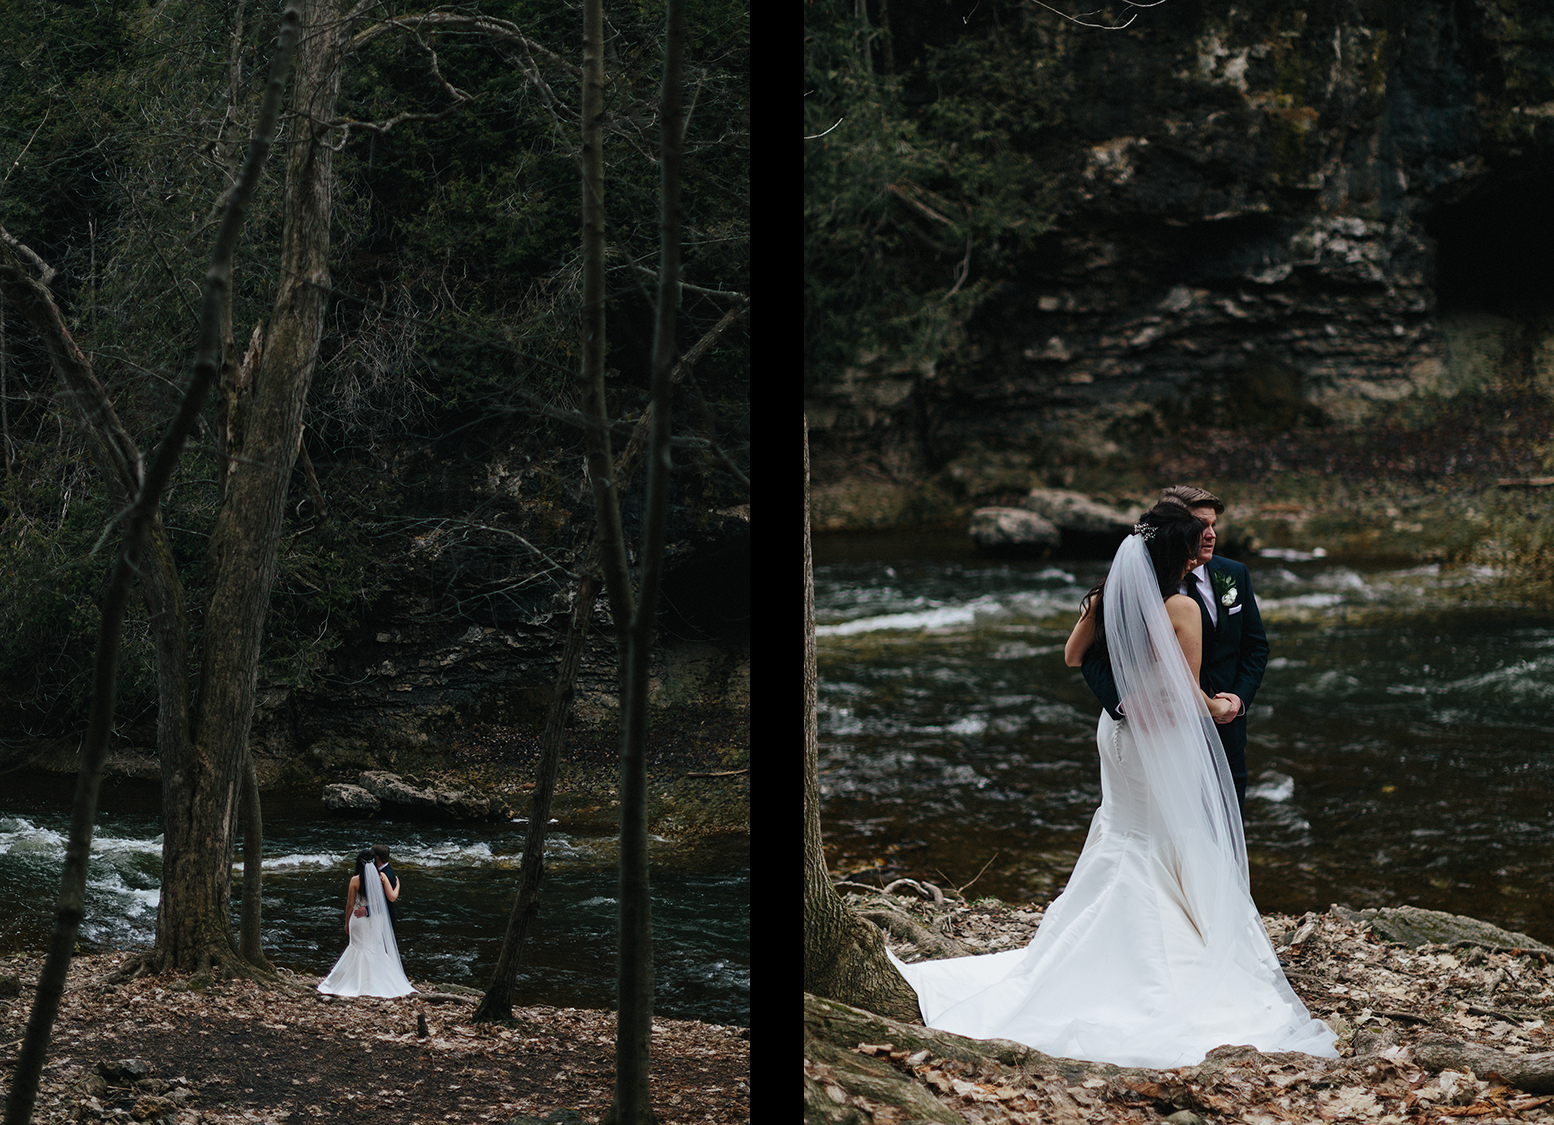 57-elora-mill-winter-wedding-candid-documentary-toronto-gta-wedding-photographer-gorge-couples-portraits-04-spread.JPG